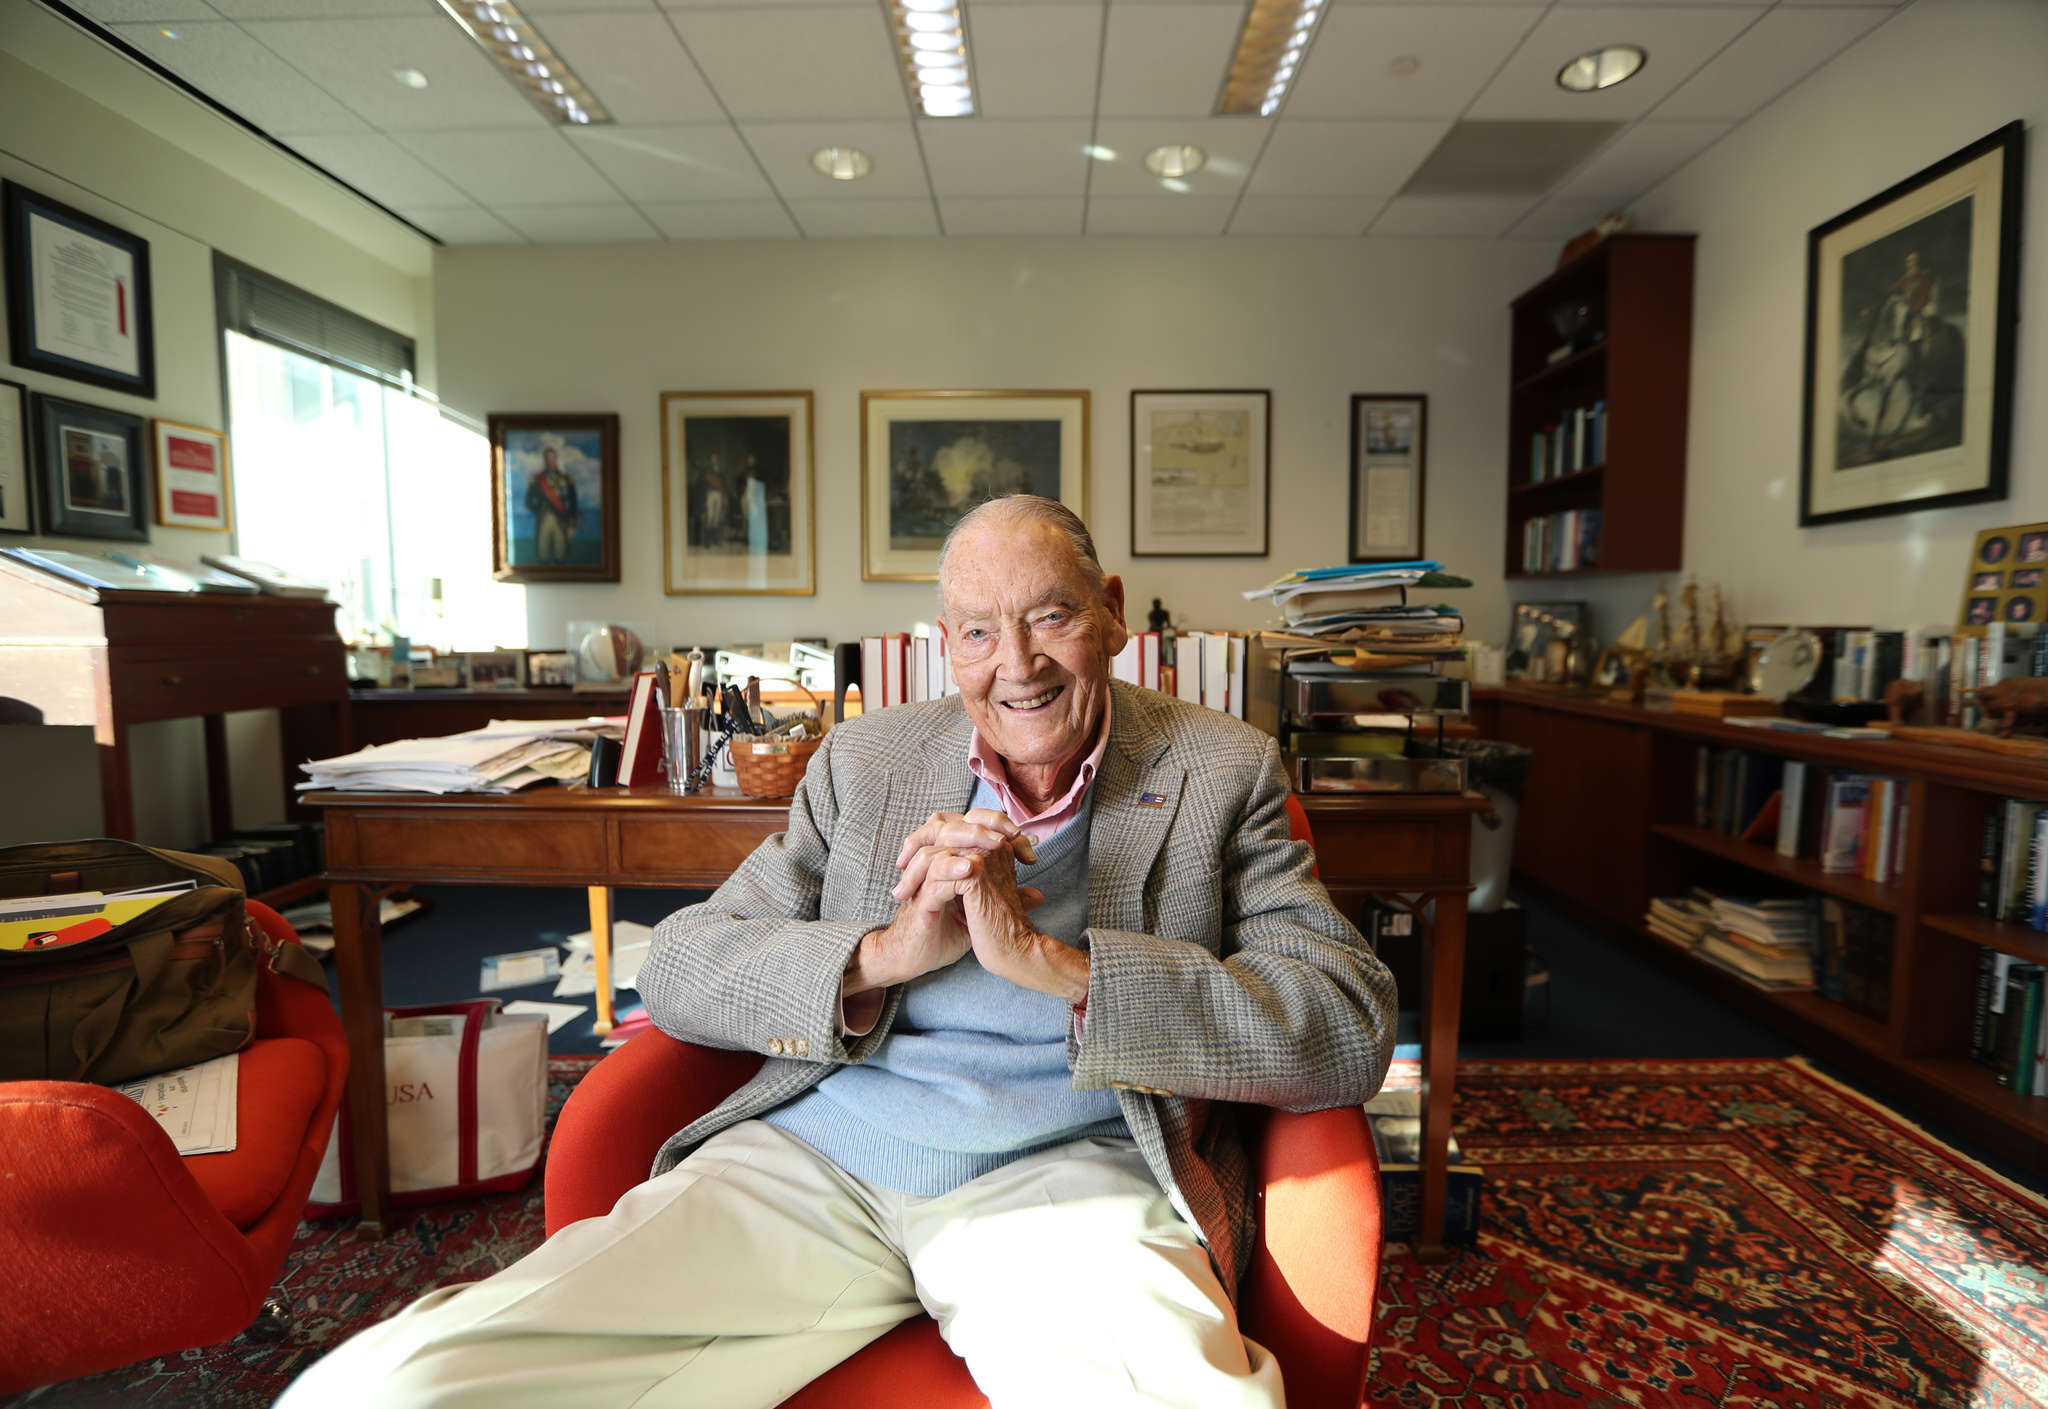 Ex-CEO John Bogle still believes in the power of low fees, starting to invest early, and dispensing with active money managers.